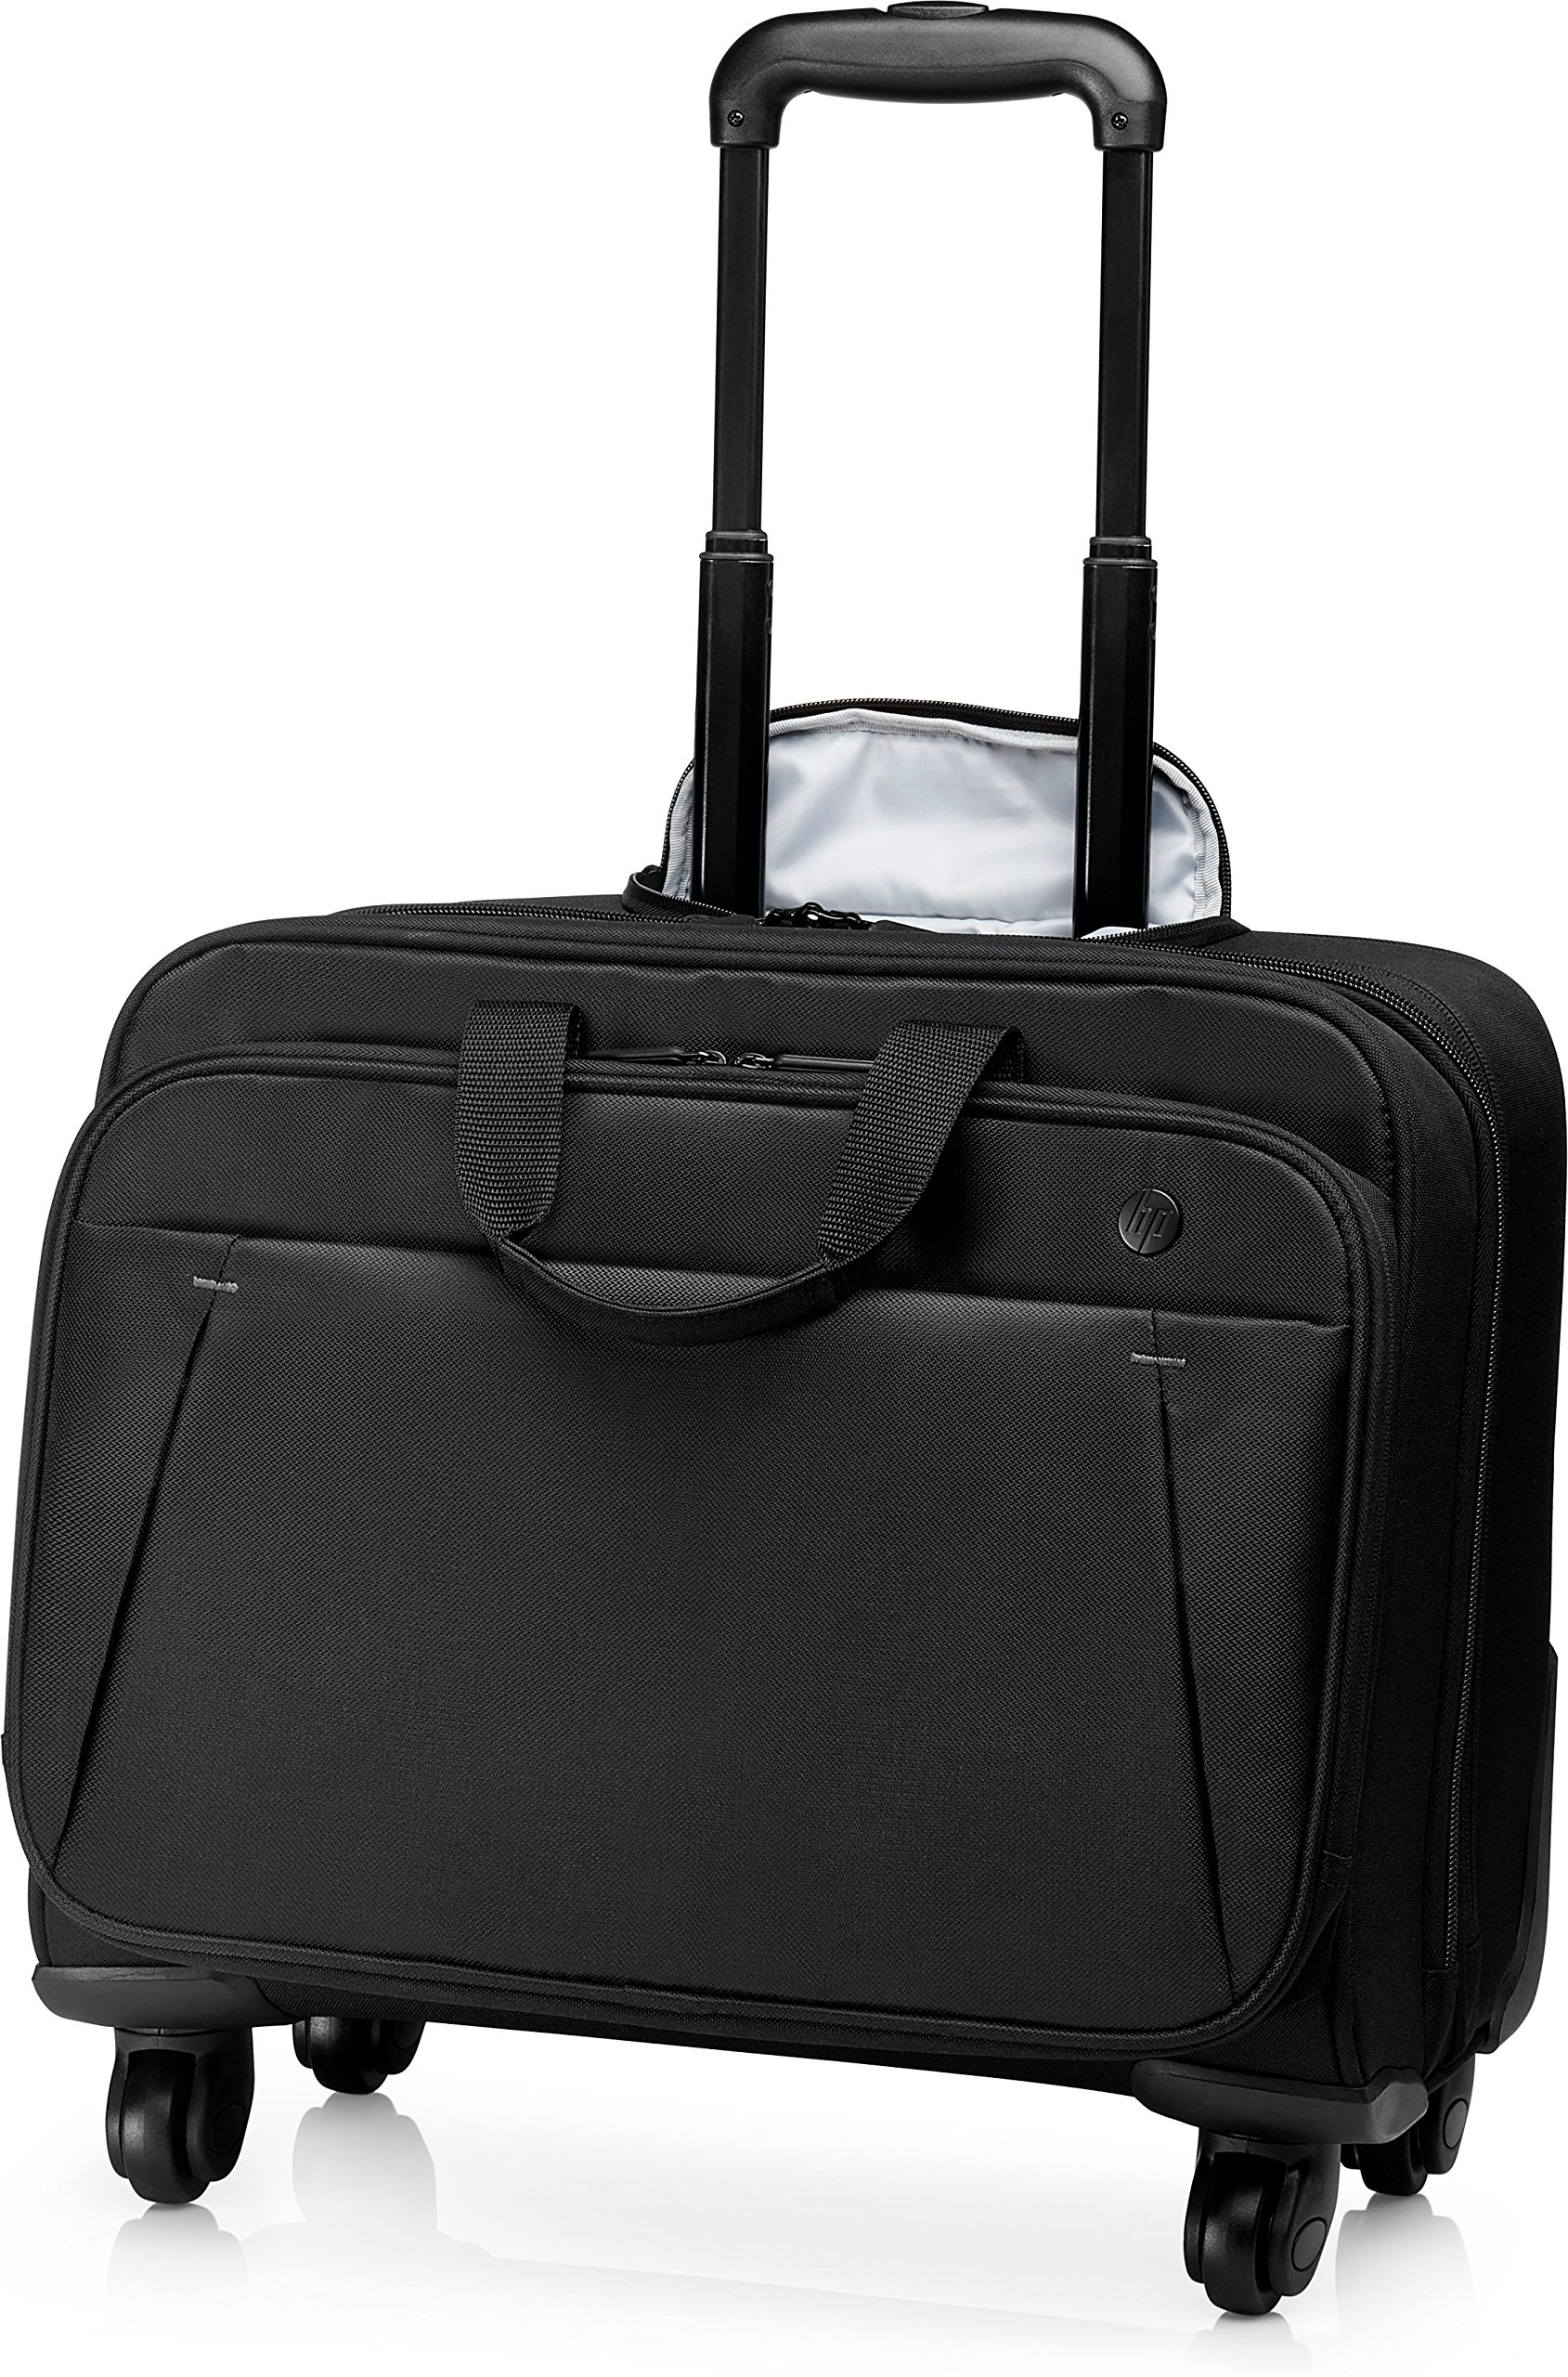 HP Notebook Carrying case - 17.3'' 245 G7; Elite x2; EliteBook 735 G6; EliteBook x360; ProBook 455r G6; ZBook 15 G6, 17 G6 by HP